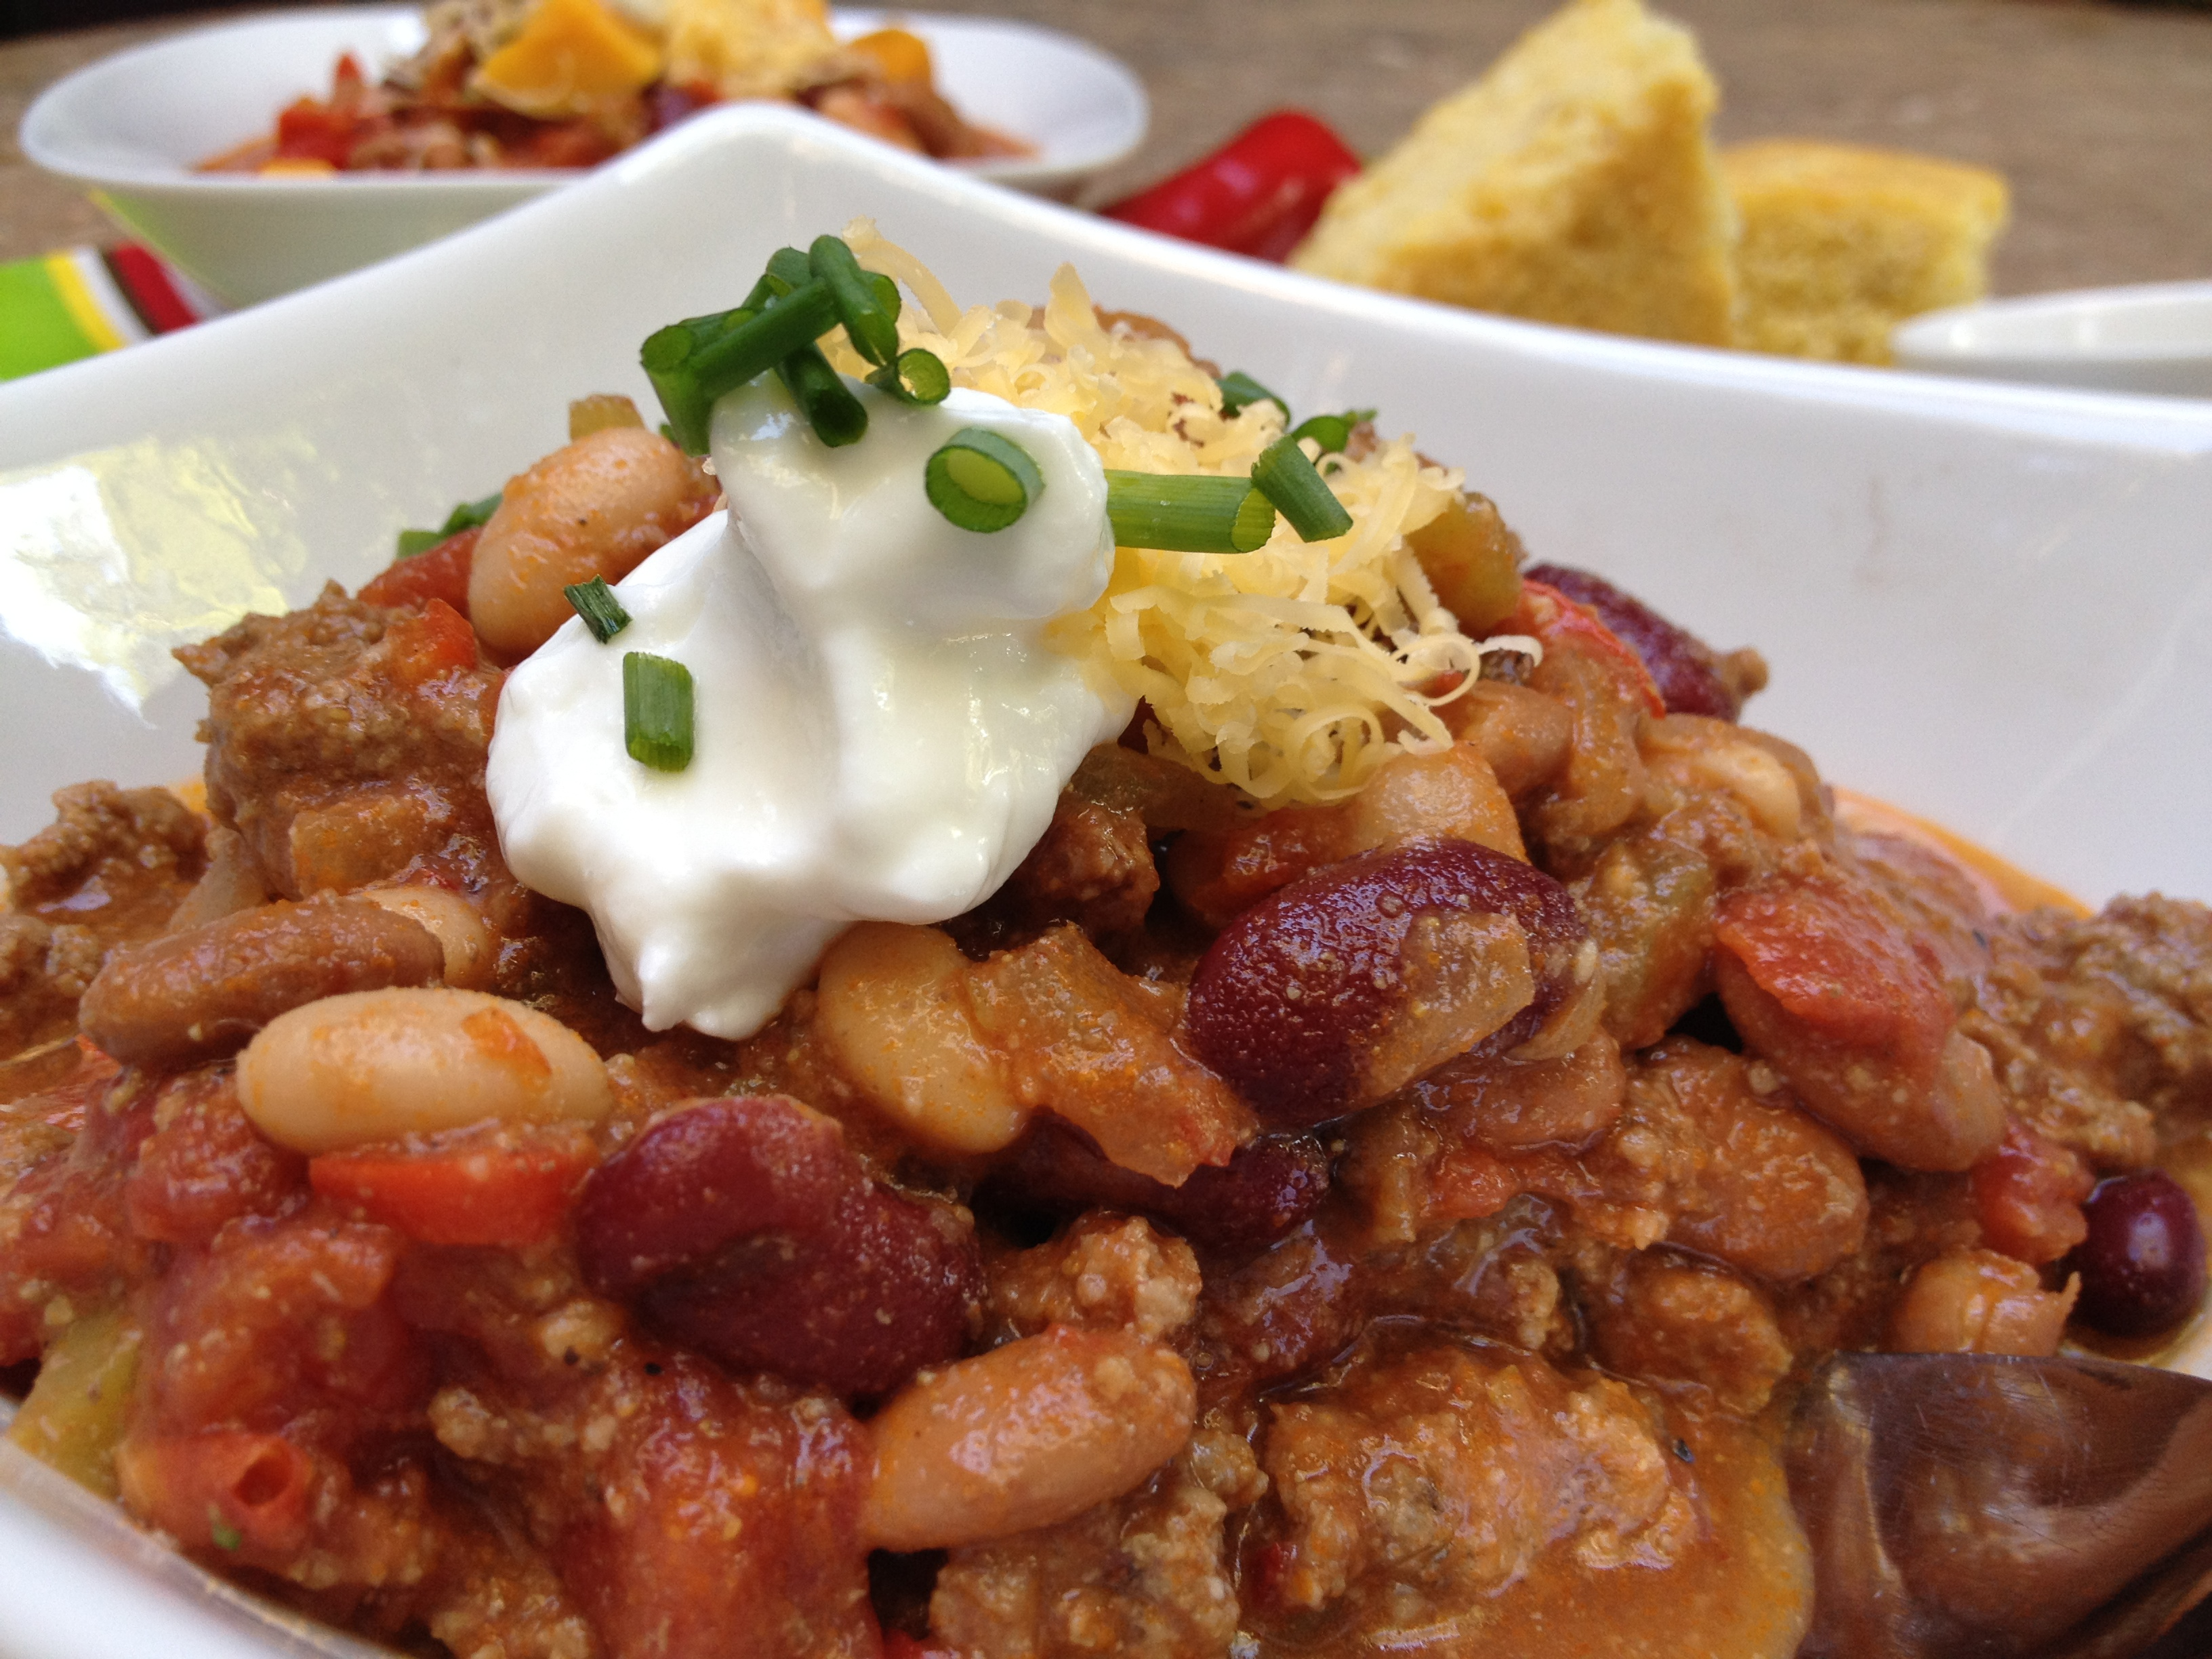 Chili with Meat